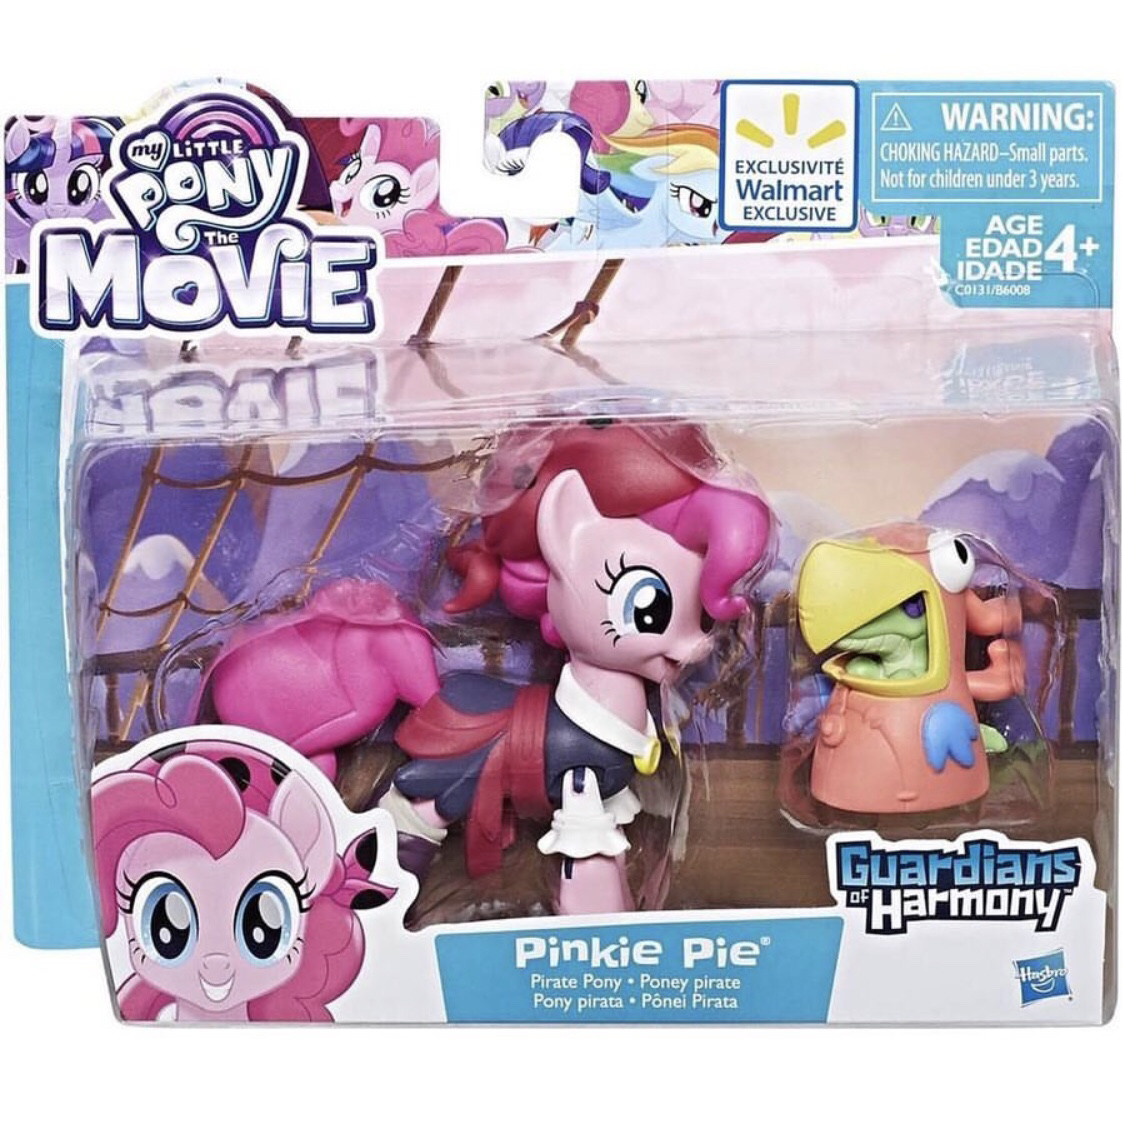 Пони пират Pirate Pony Pinkie Pie My Little Pony от Hasbro